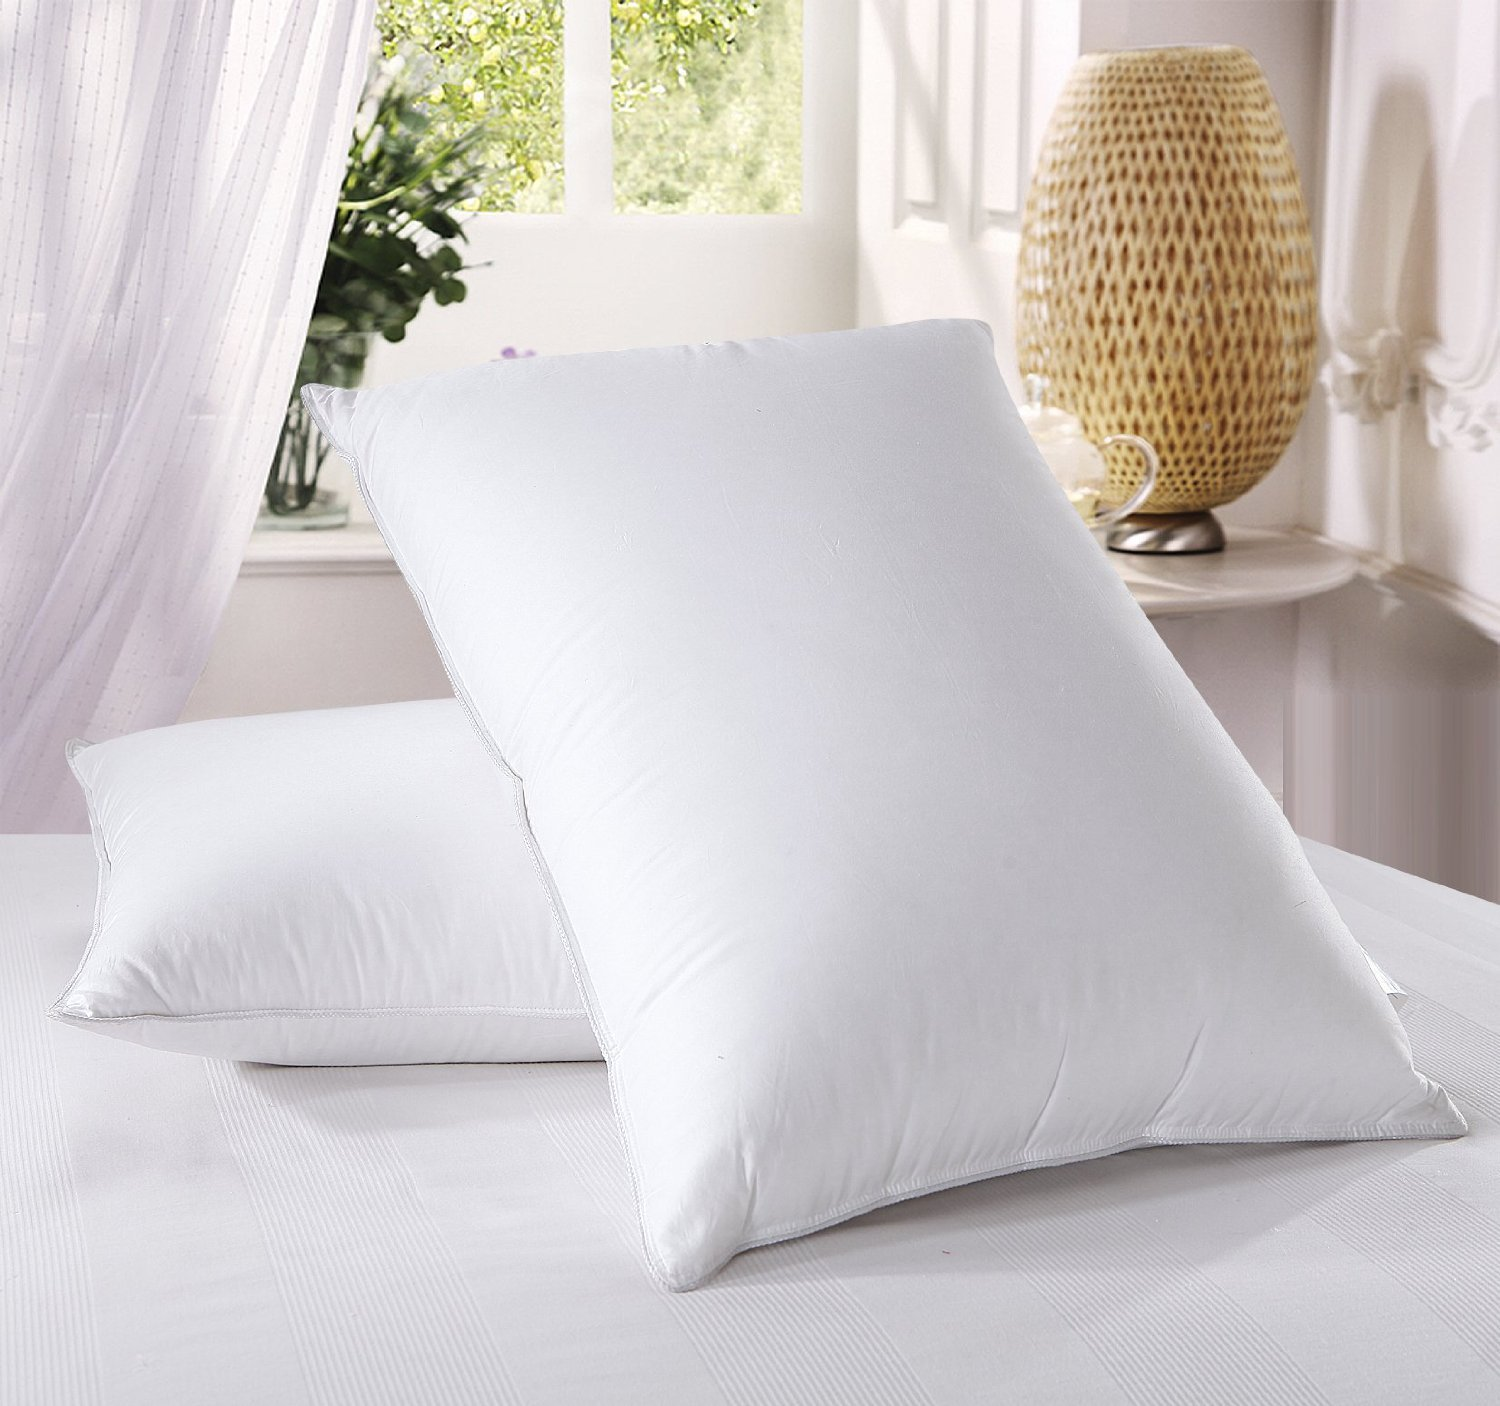 Royal Hotel's Down Pillow - 500 Thread Count 100% Cotton , Standard / Queen Size, Firm, Set of 2